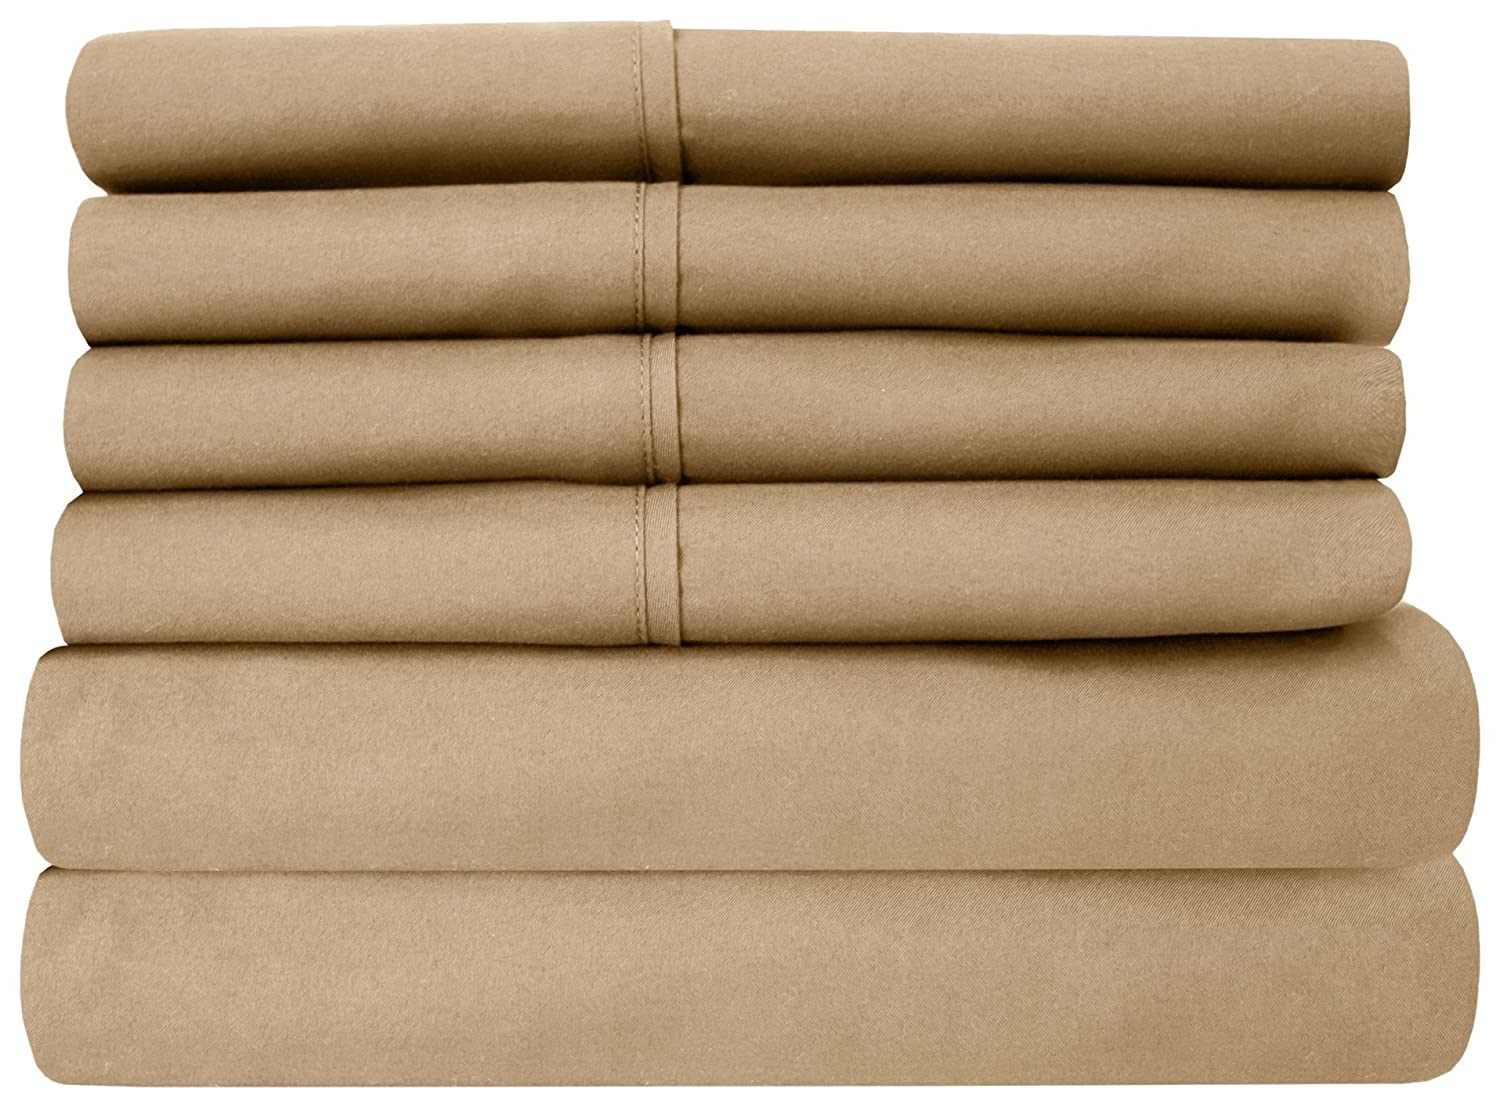 Sweet Home Collection 6 Piece Bed Sheet Set, Queen, Taupe